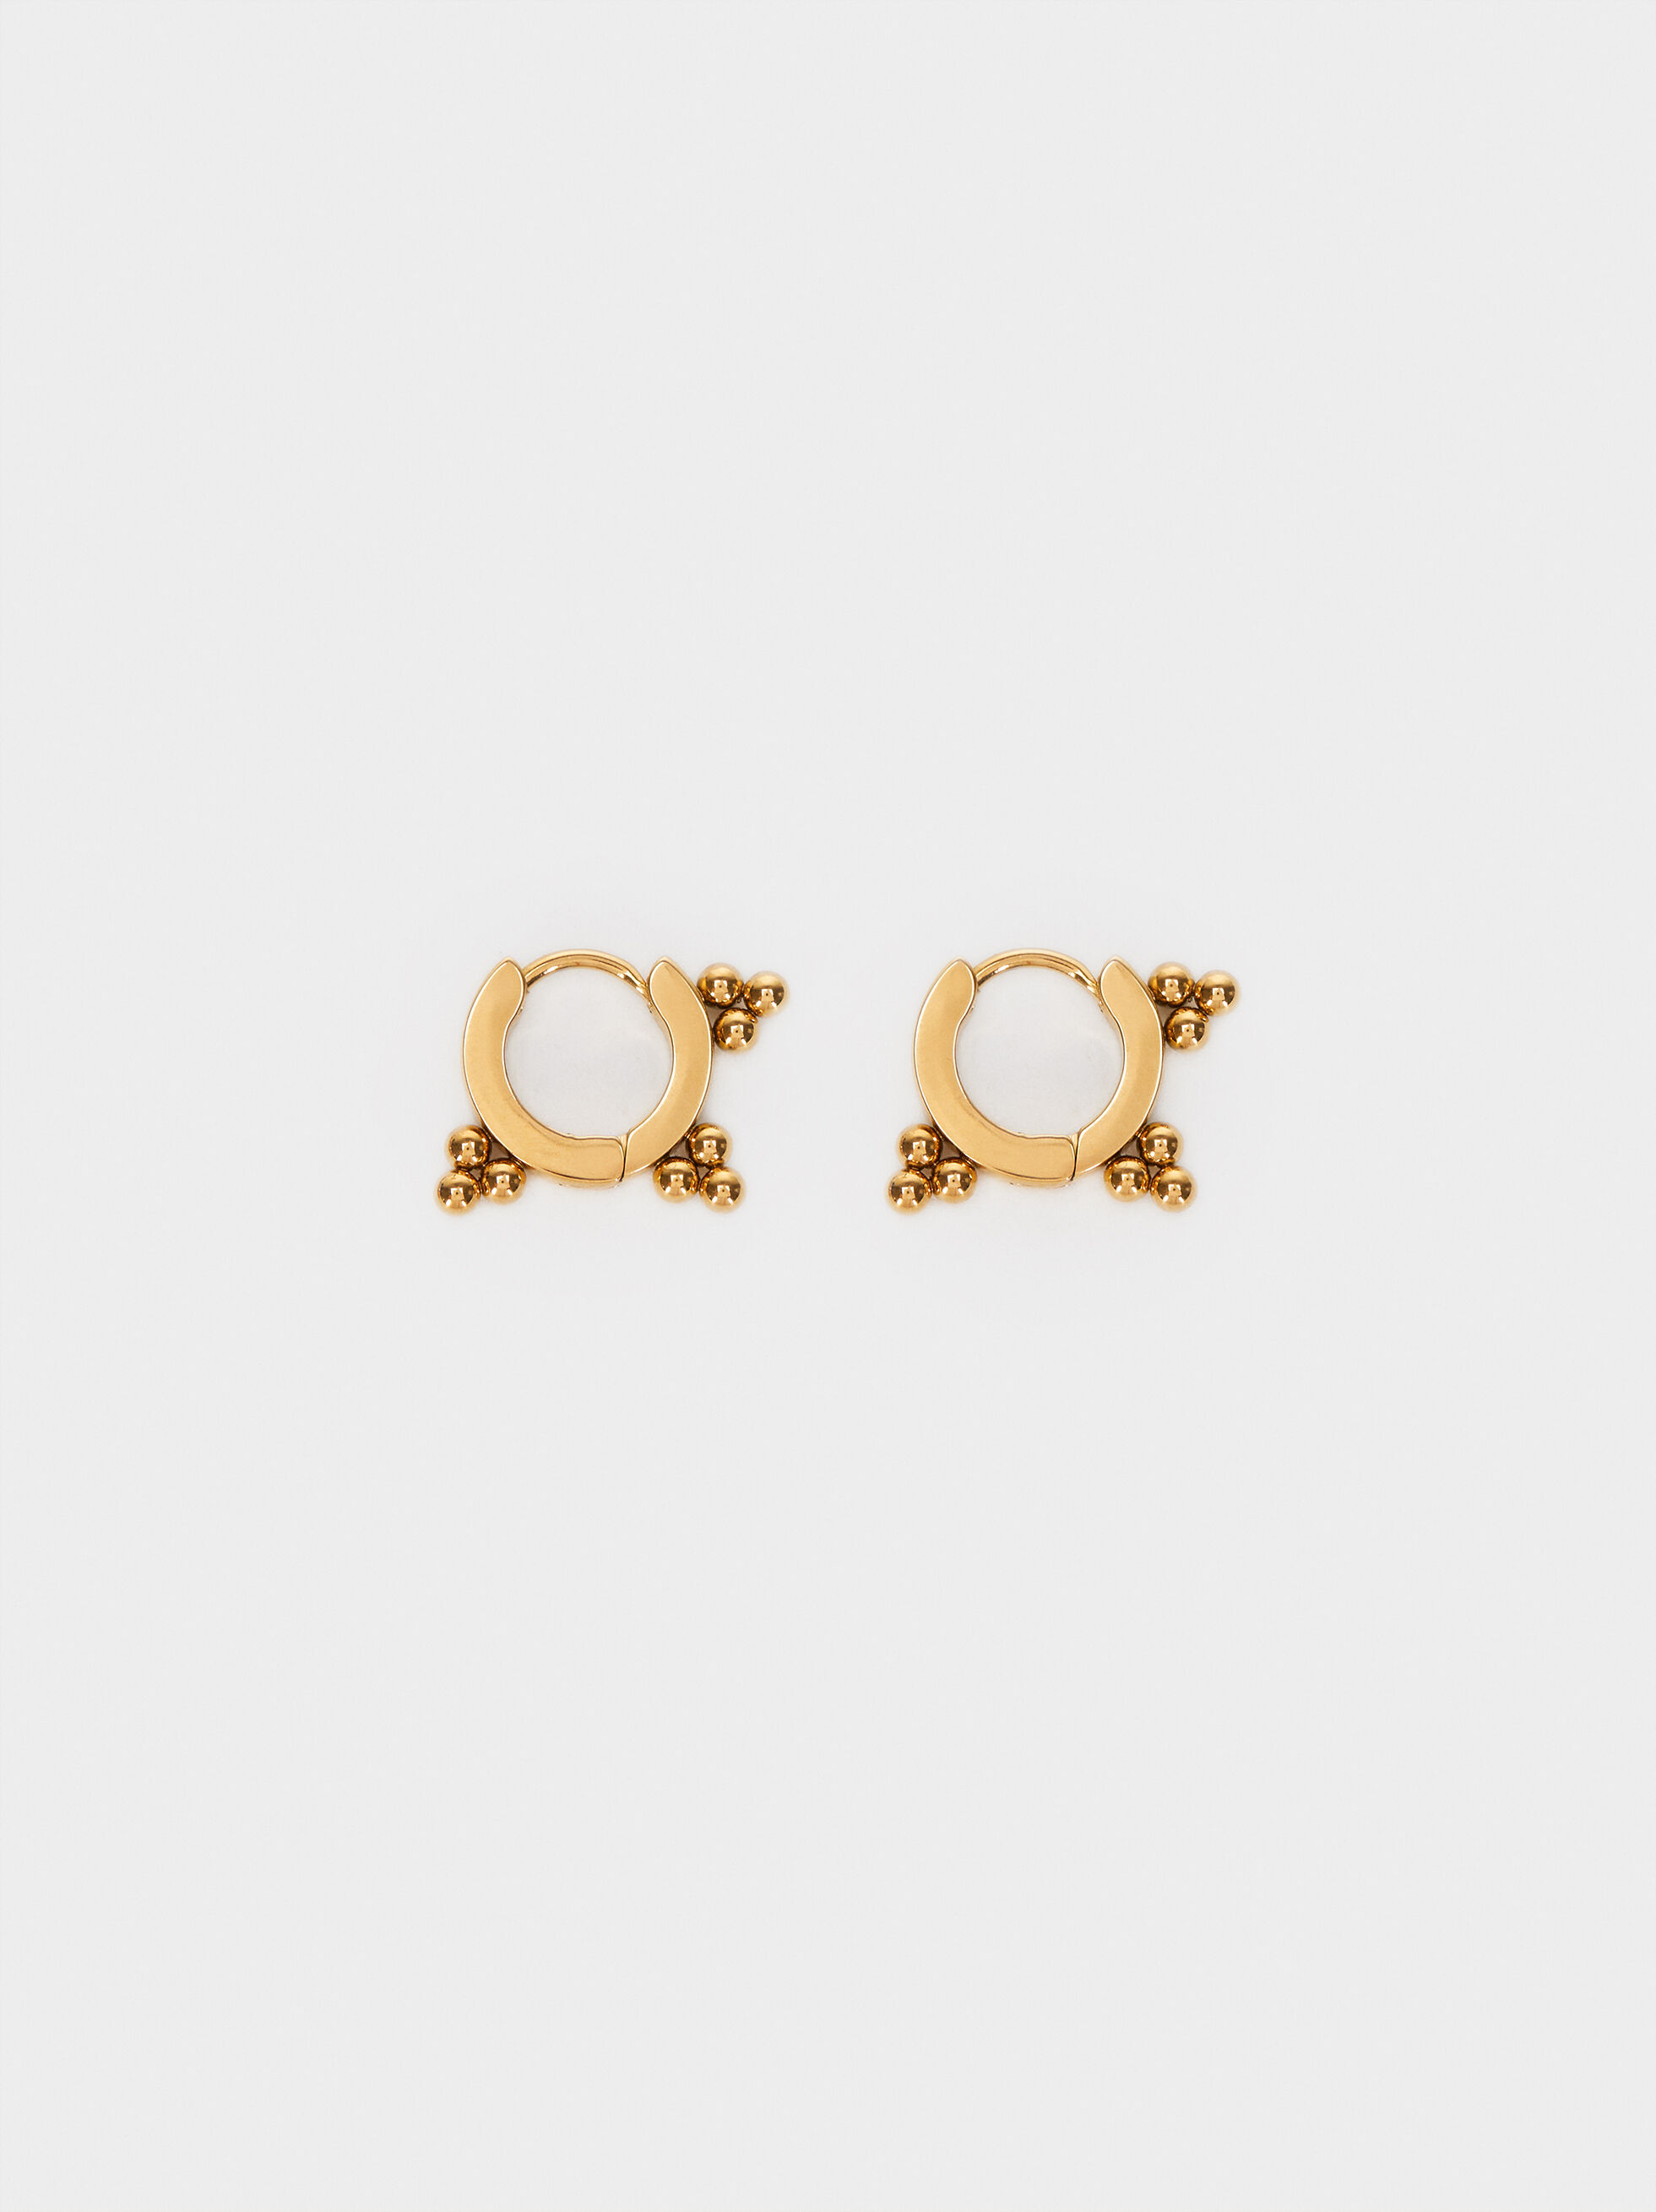 Gold Stainless Steel Small Hoop Earrings, , hi-res